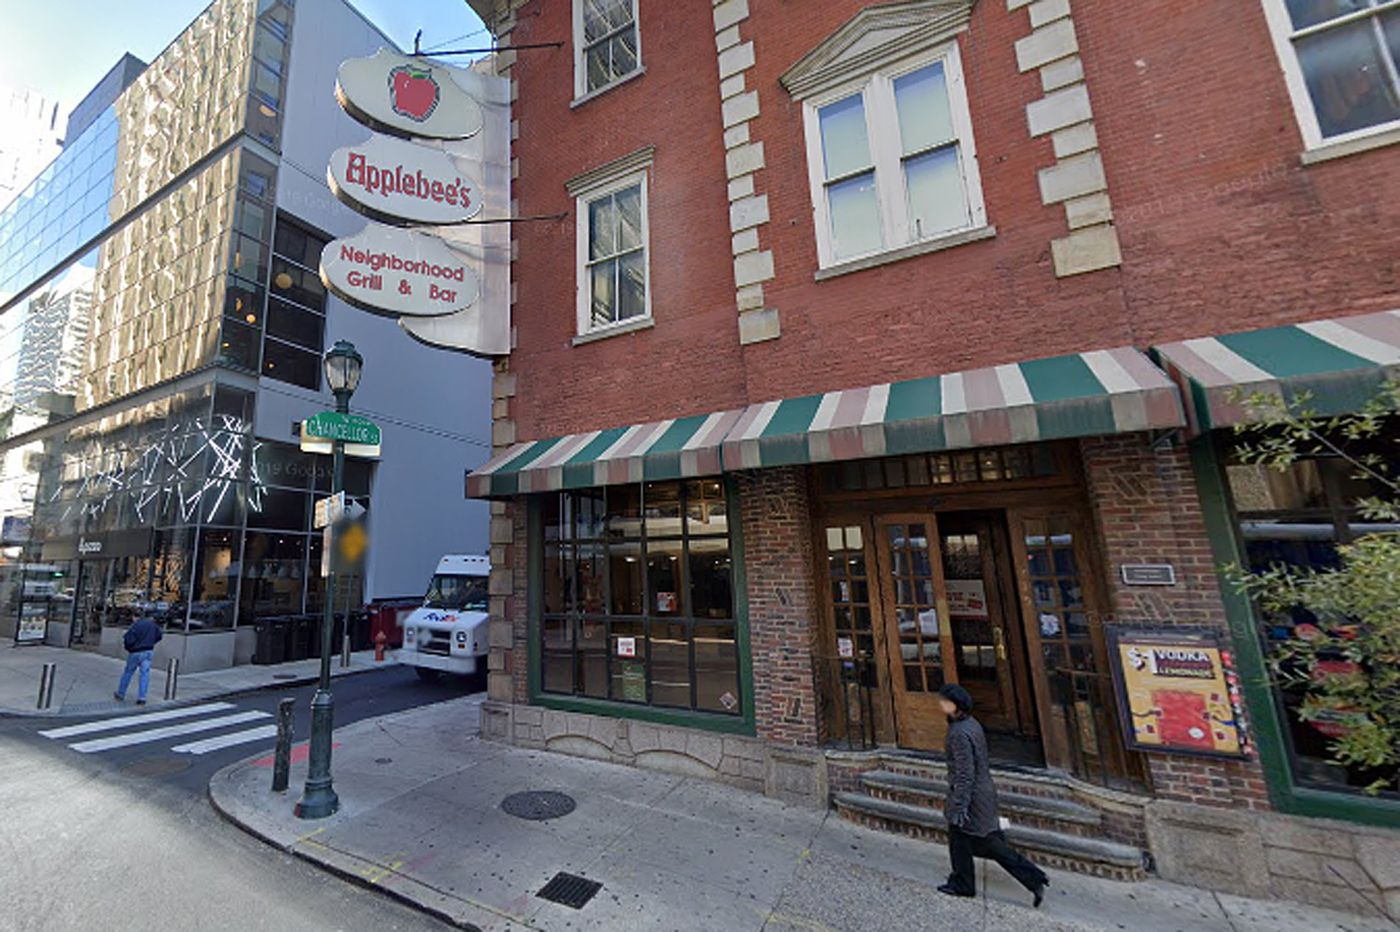 Not eating good in the neighborhood: The Applebee's in Center City has closed